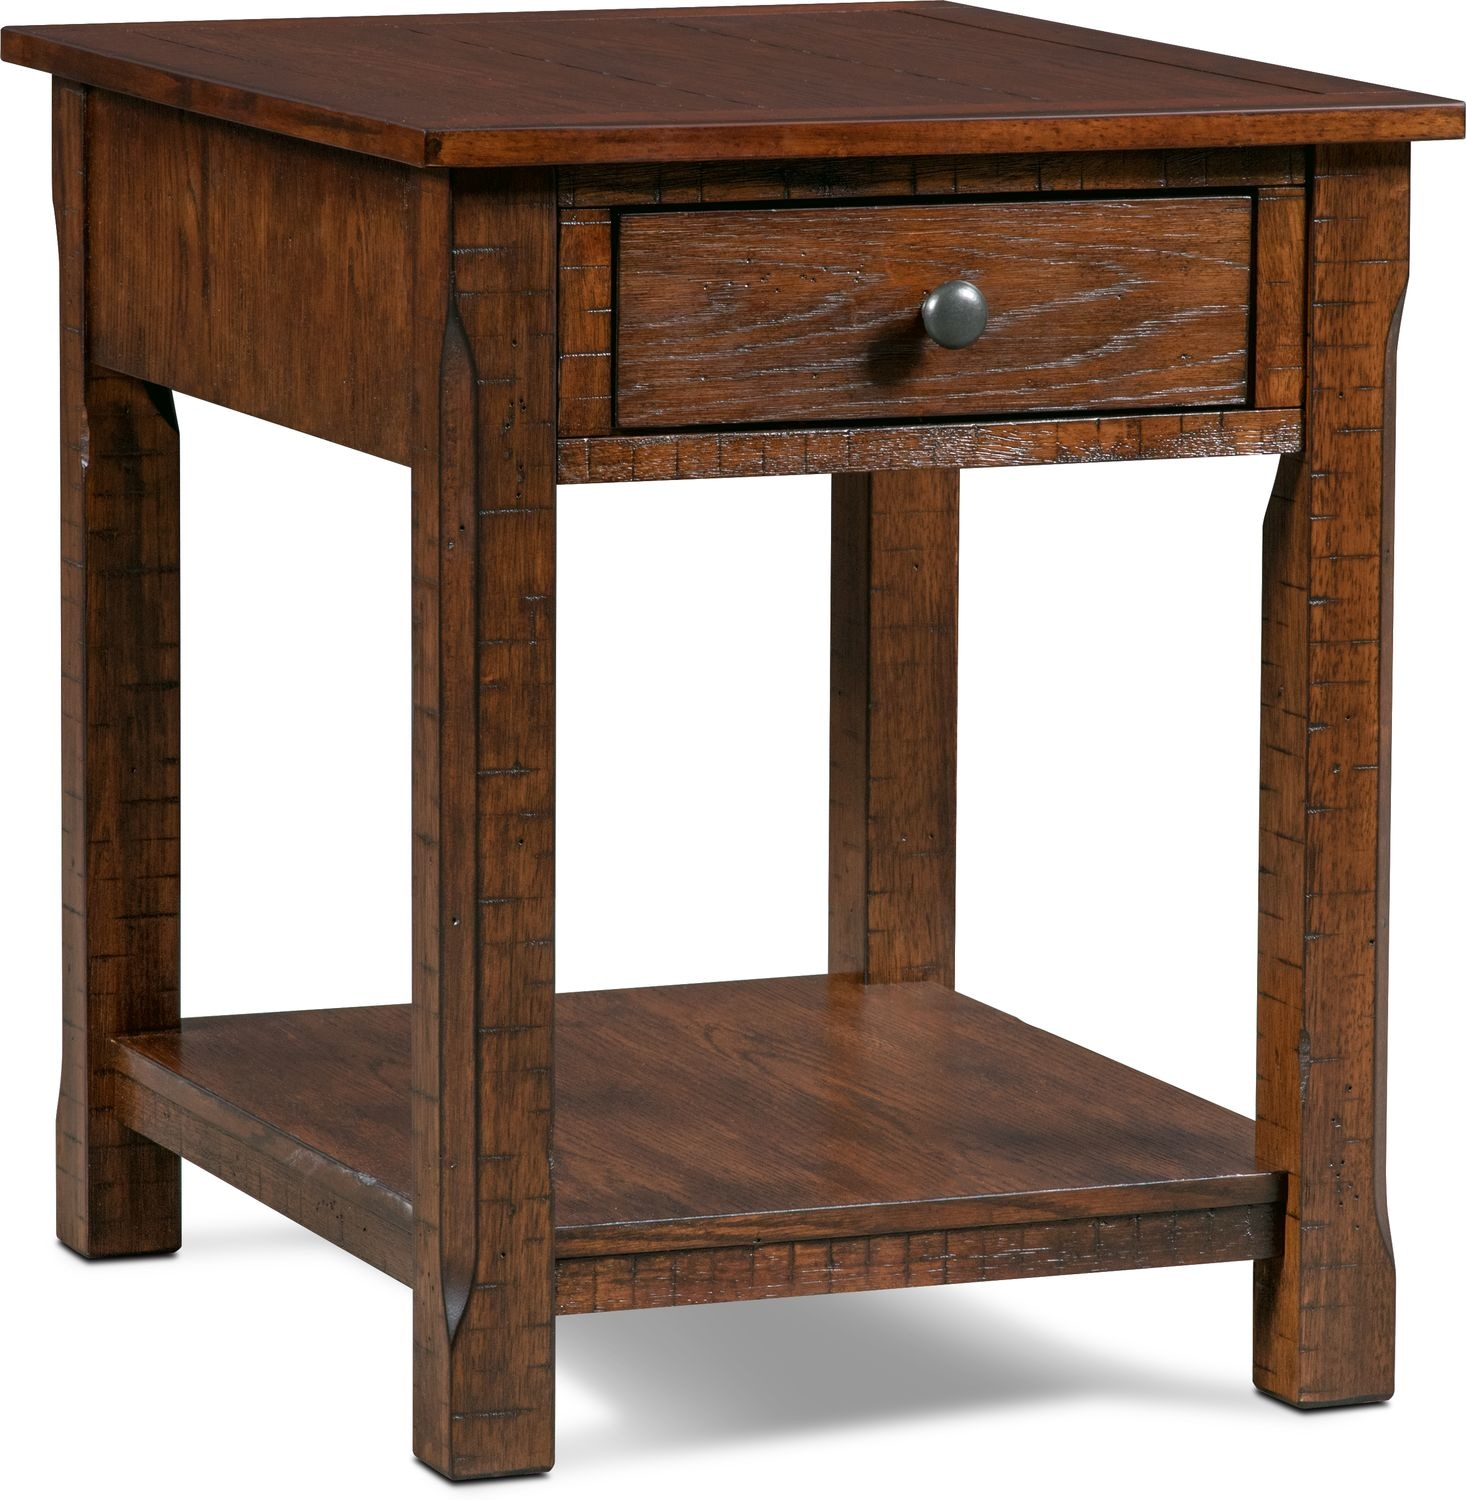 sheffield rectangular end table walnut value city furniture and small accent click change wood iron coffee sets nic umbrella side wooden cabinet hampton bay lounge chair pretty